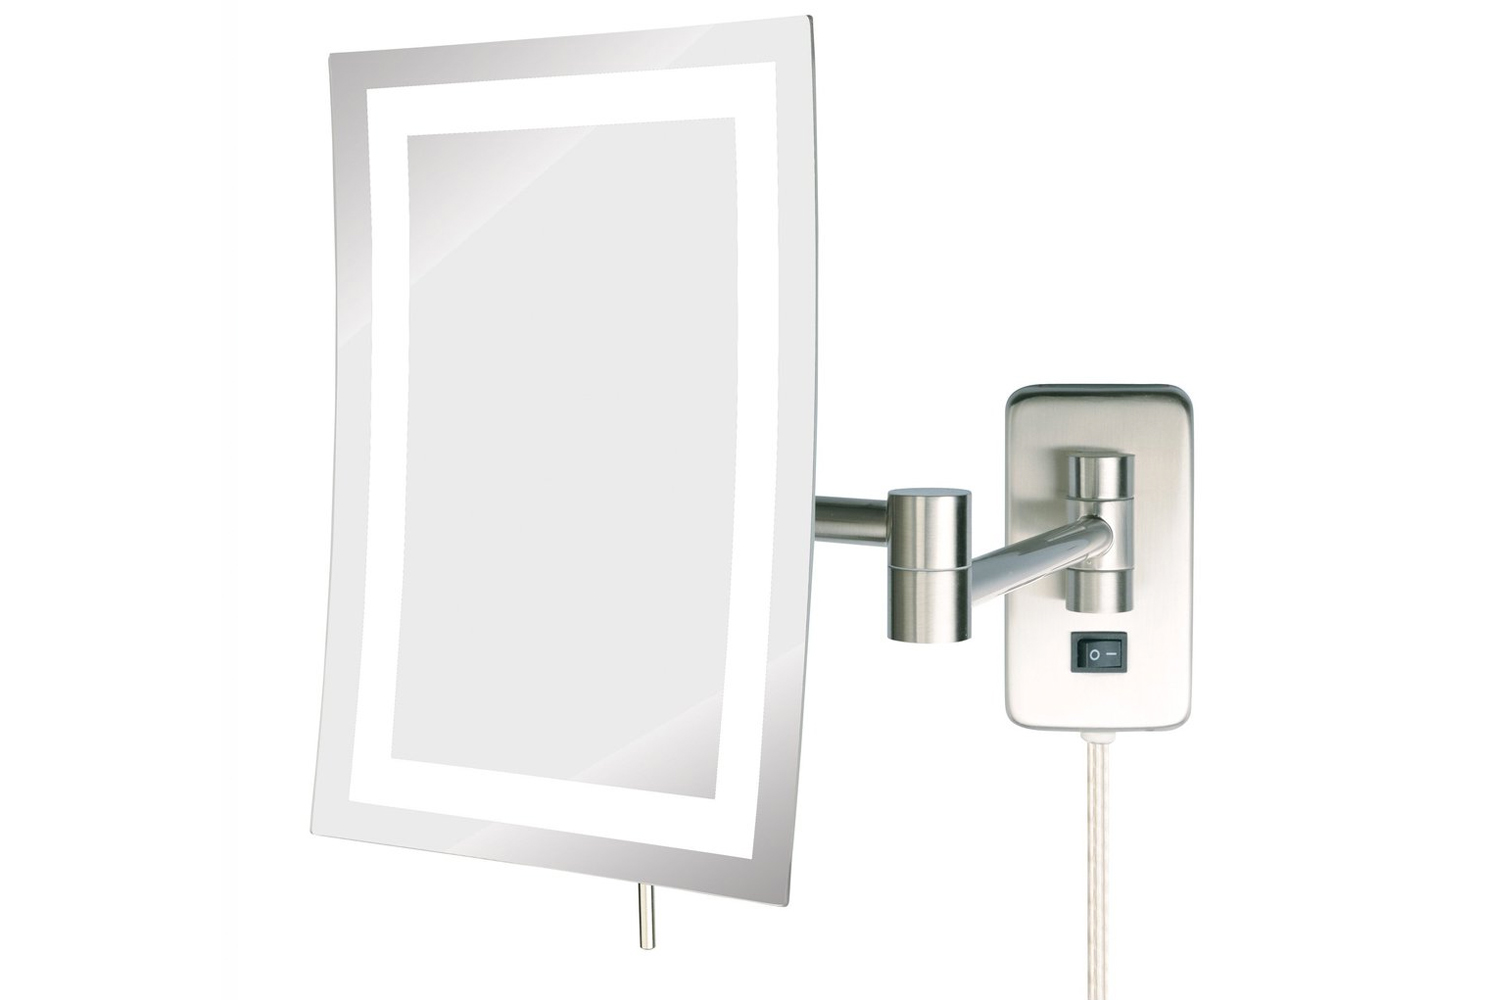 Included as an option is the Sharper image LED lighted wall-mounted mirror with motion sensor capabilities to offer a hi-tech option for guestrooms.